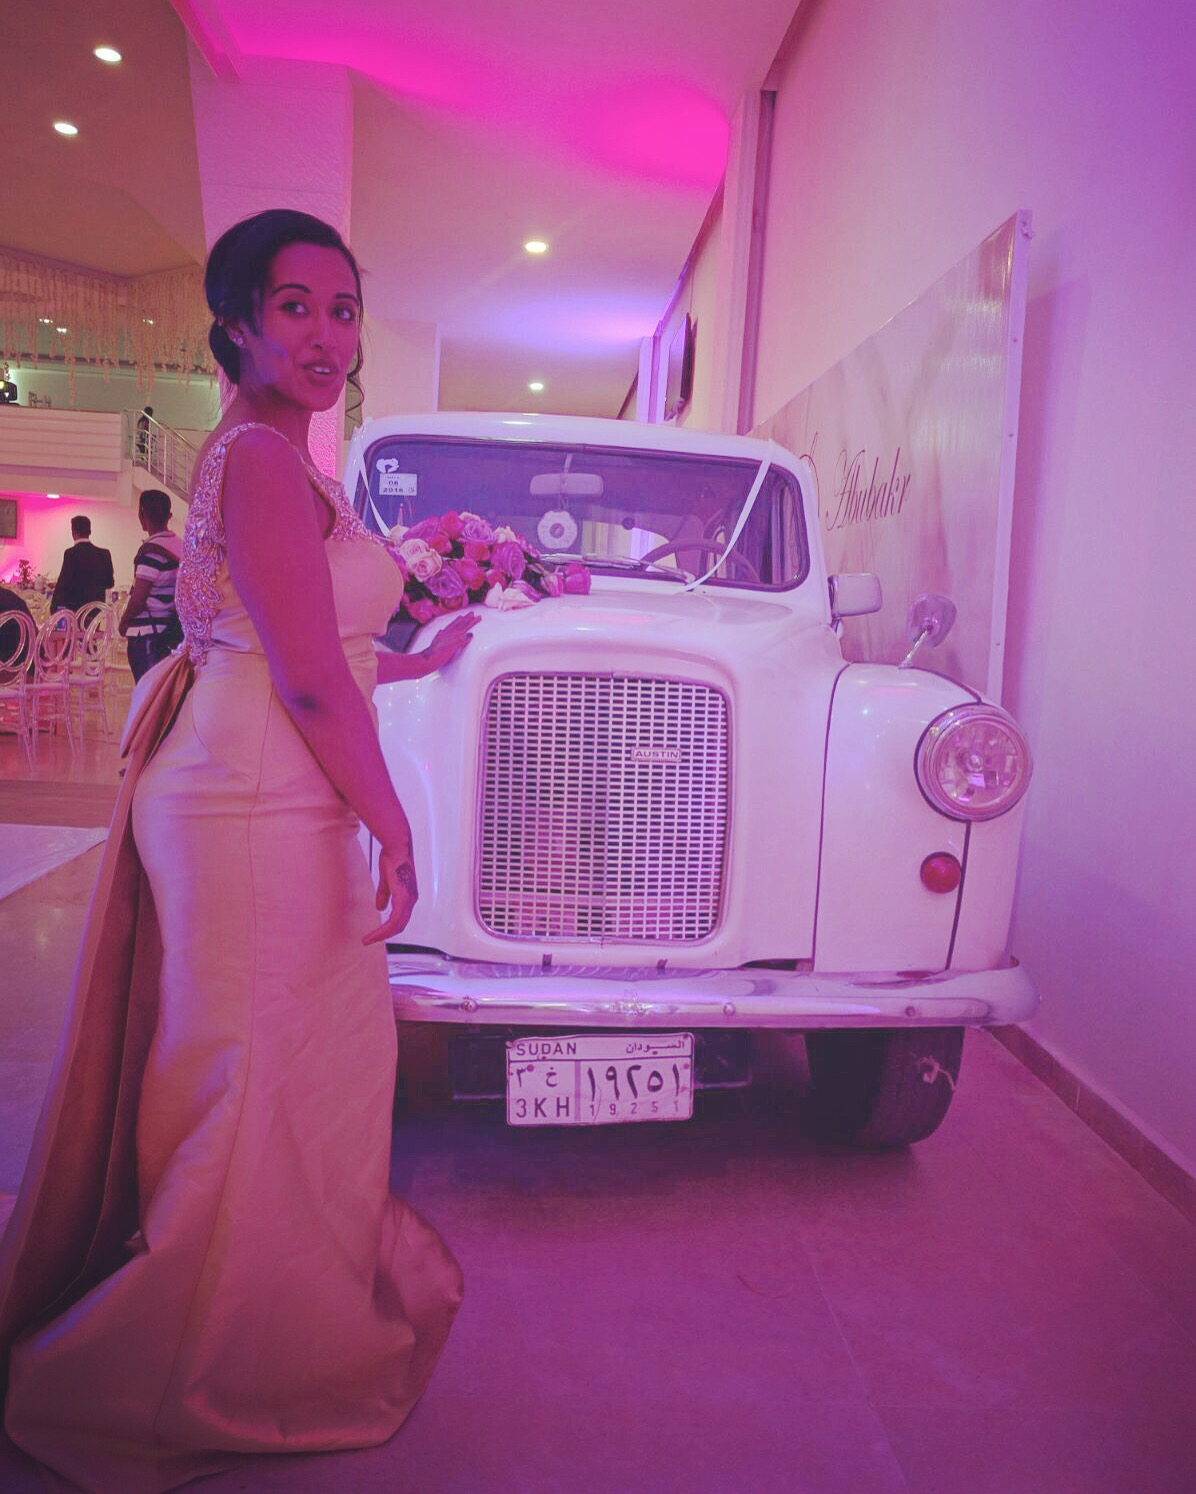 In my ball gown posing next to the vintage Rolls Royce. Shoutout cuzzo for providing the car, the pose, and the awkward smile!